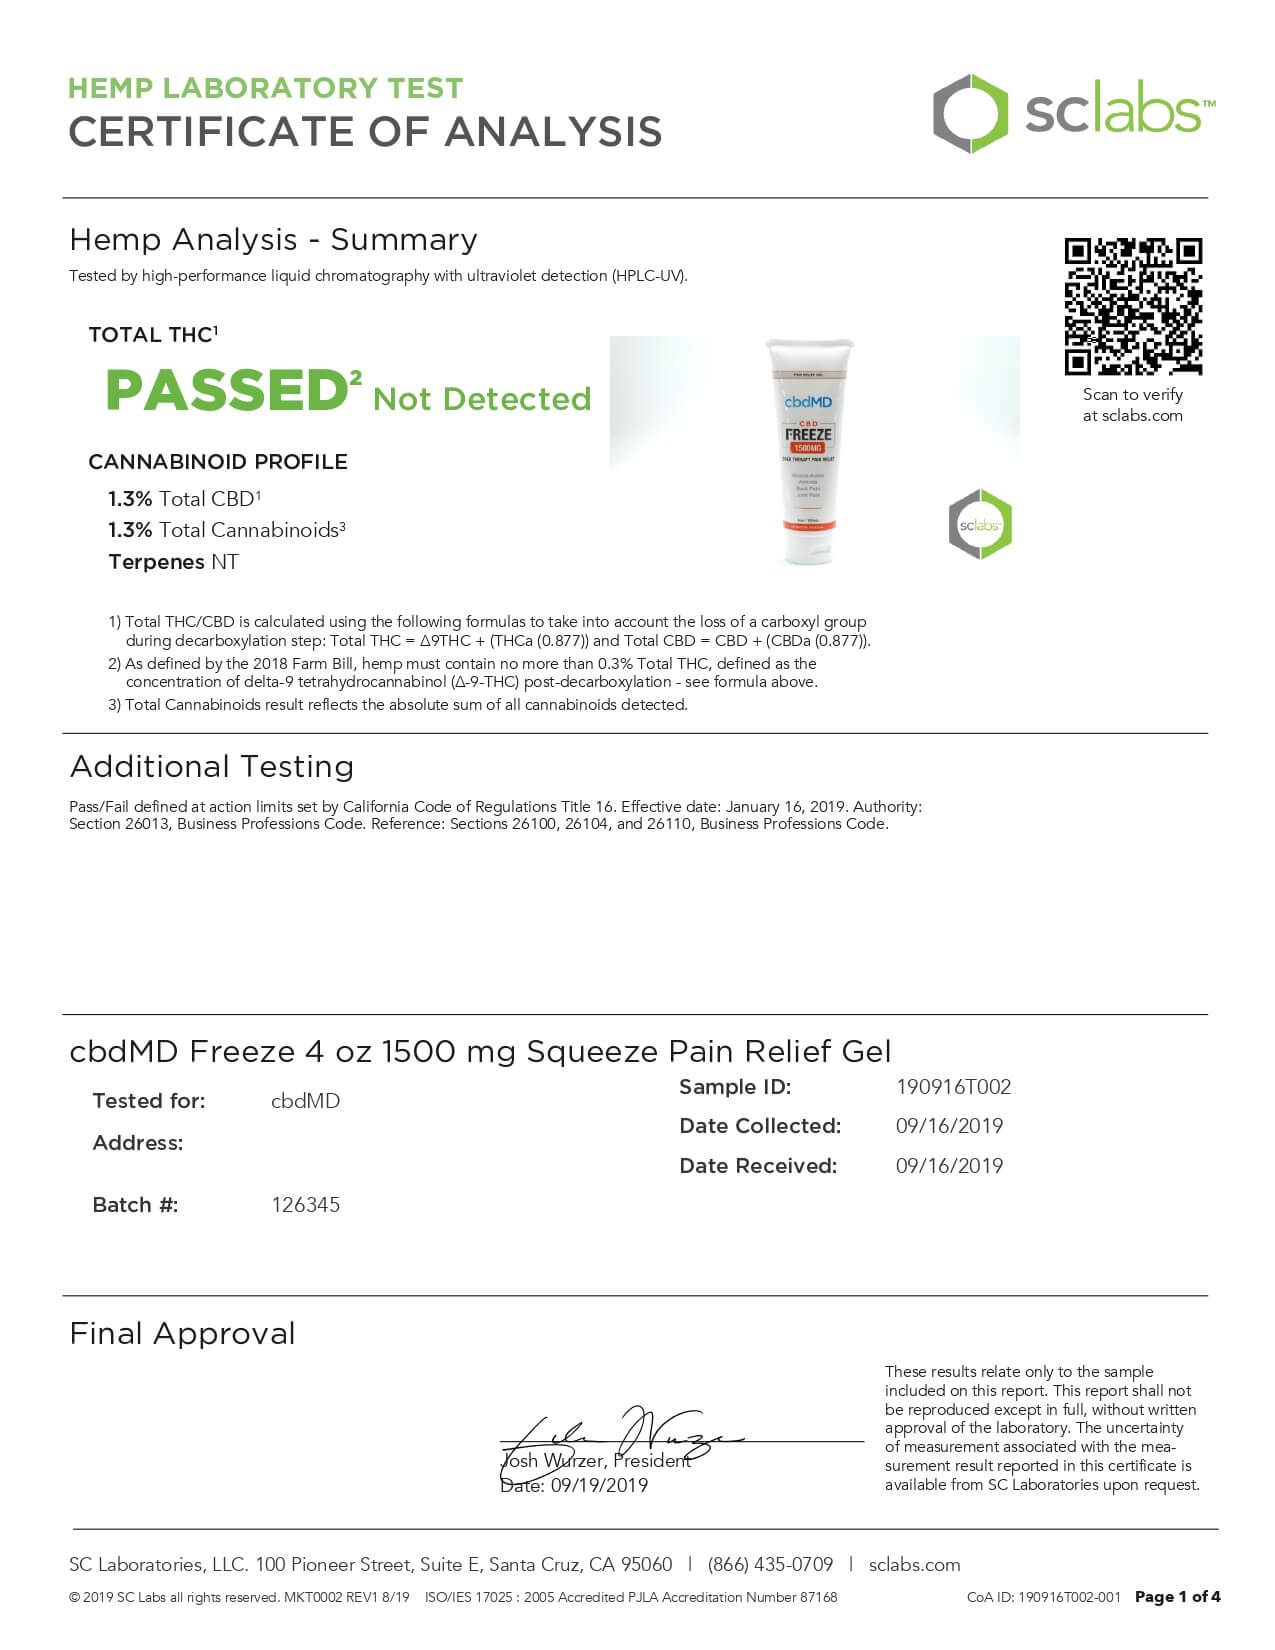 cbdMD CBD Topical Freeze Cold Therapy 4oz 1500mg Lab Report